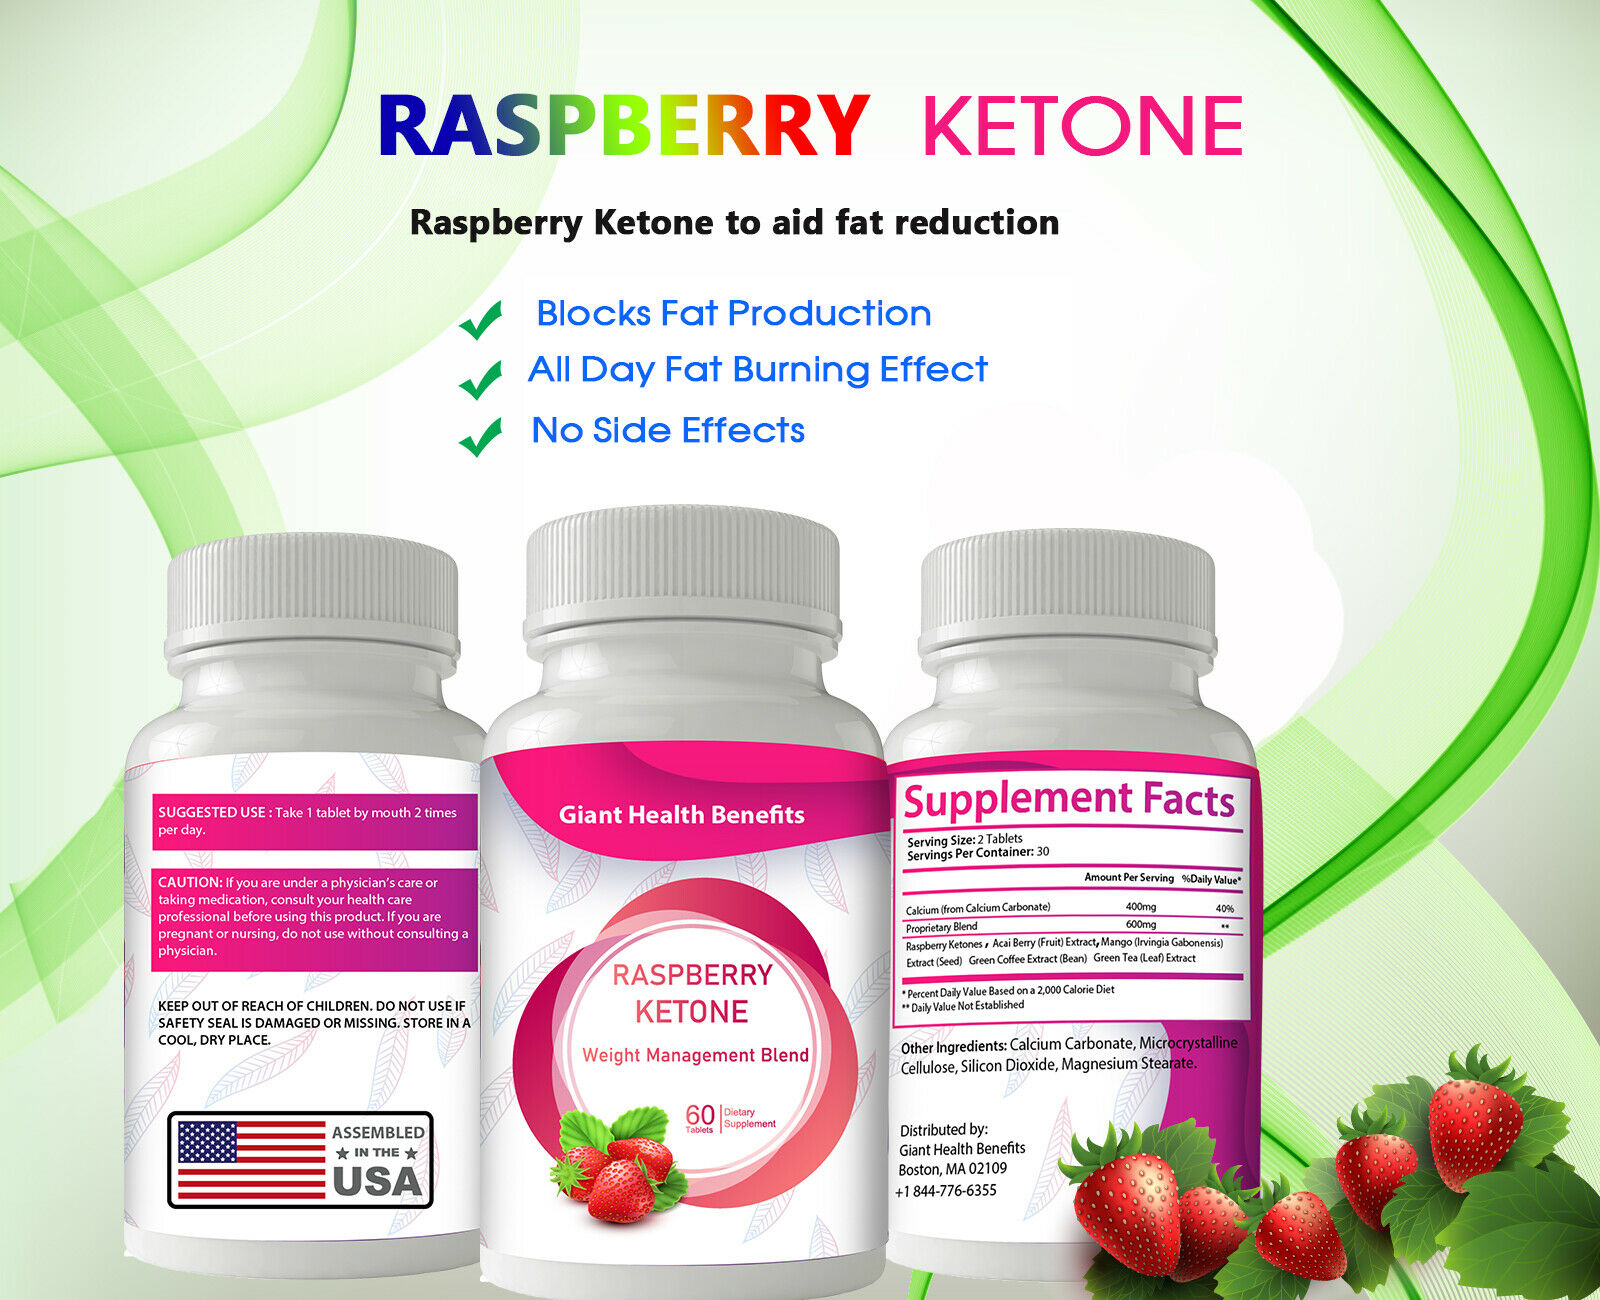 30 Strength Raspberry Ketones Weight Loss Slimming Ketone Diet Capsules Bottle For Sale Online Ebay